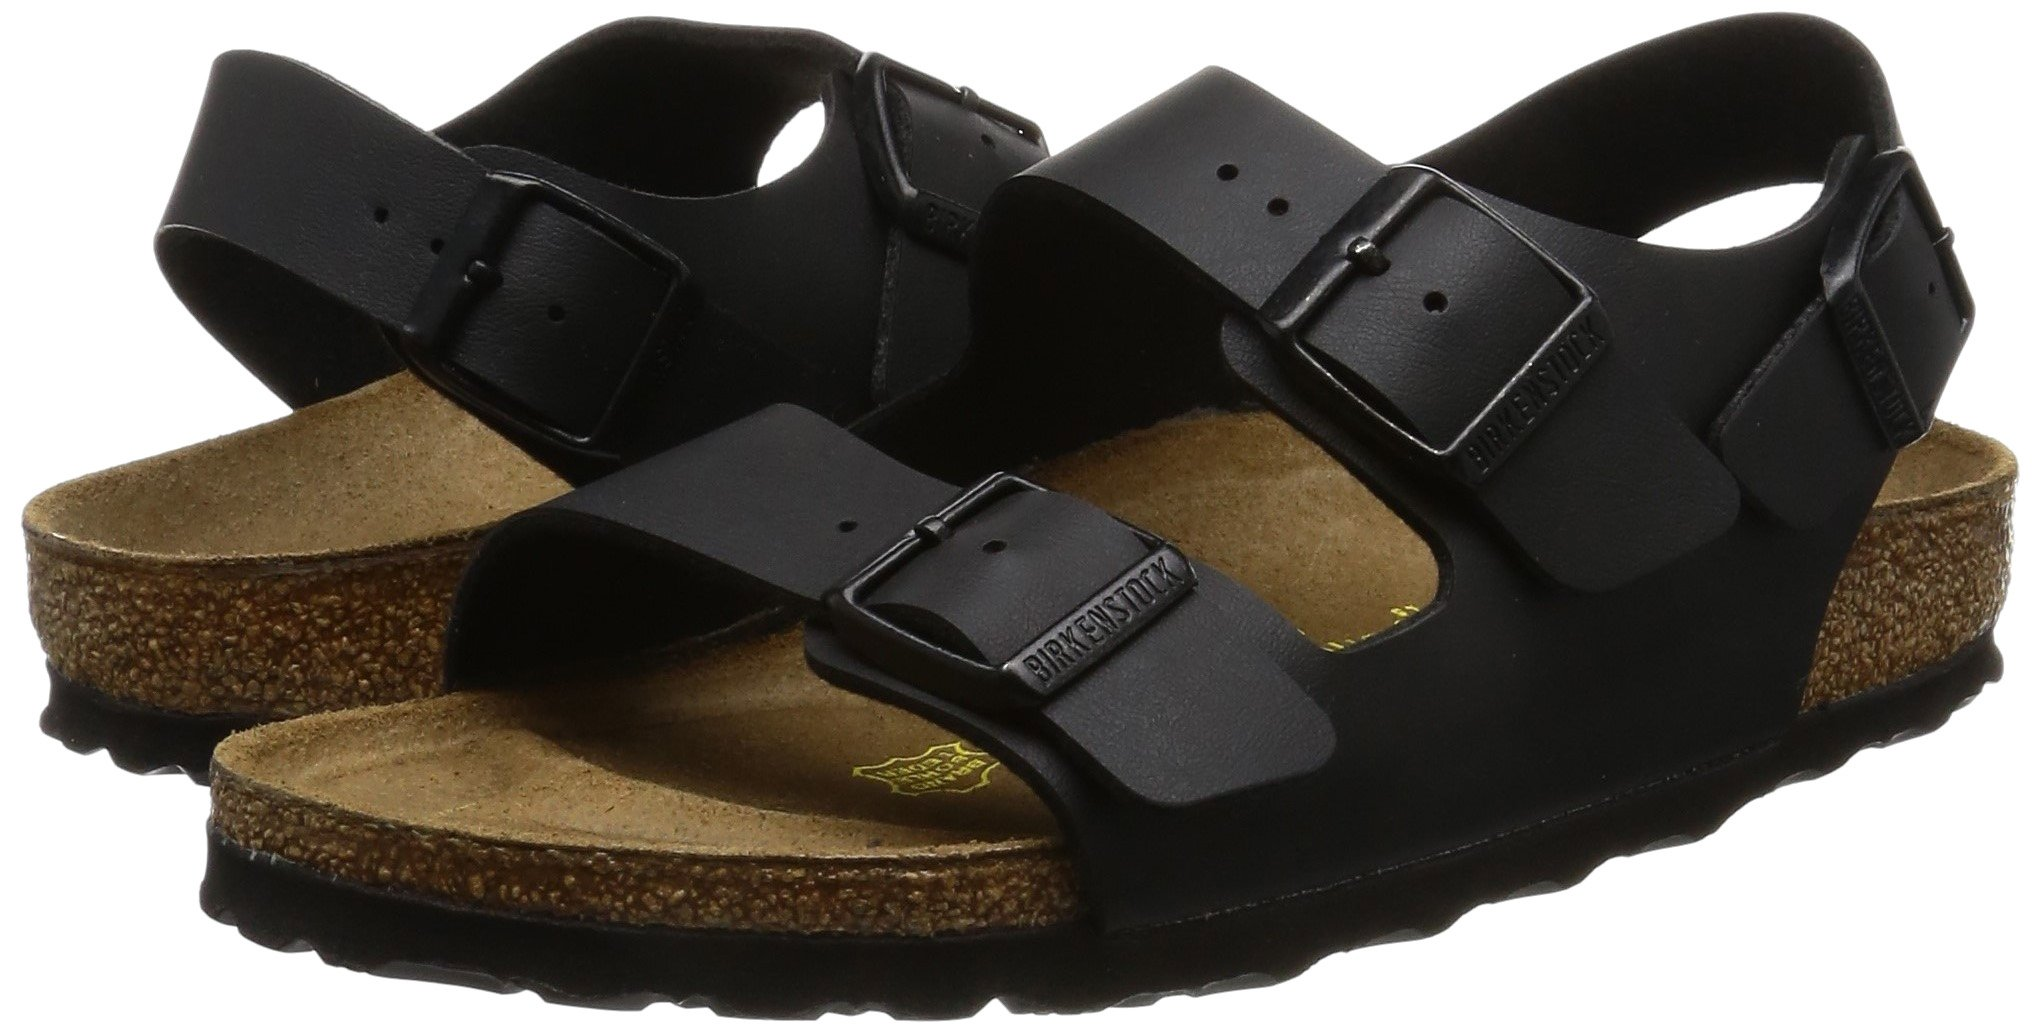 2840fa8d7 Birkenstock Unisex Milano Leather Sandals, Black, 40 - 034791 < Sandals <  Clothing, Shoes & Jewelry - tibs